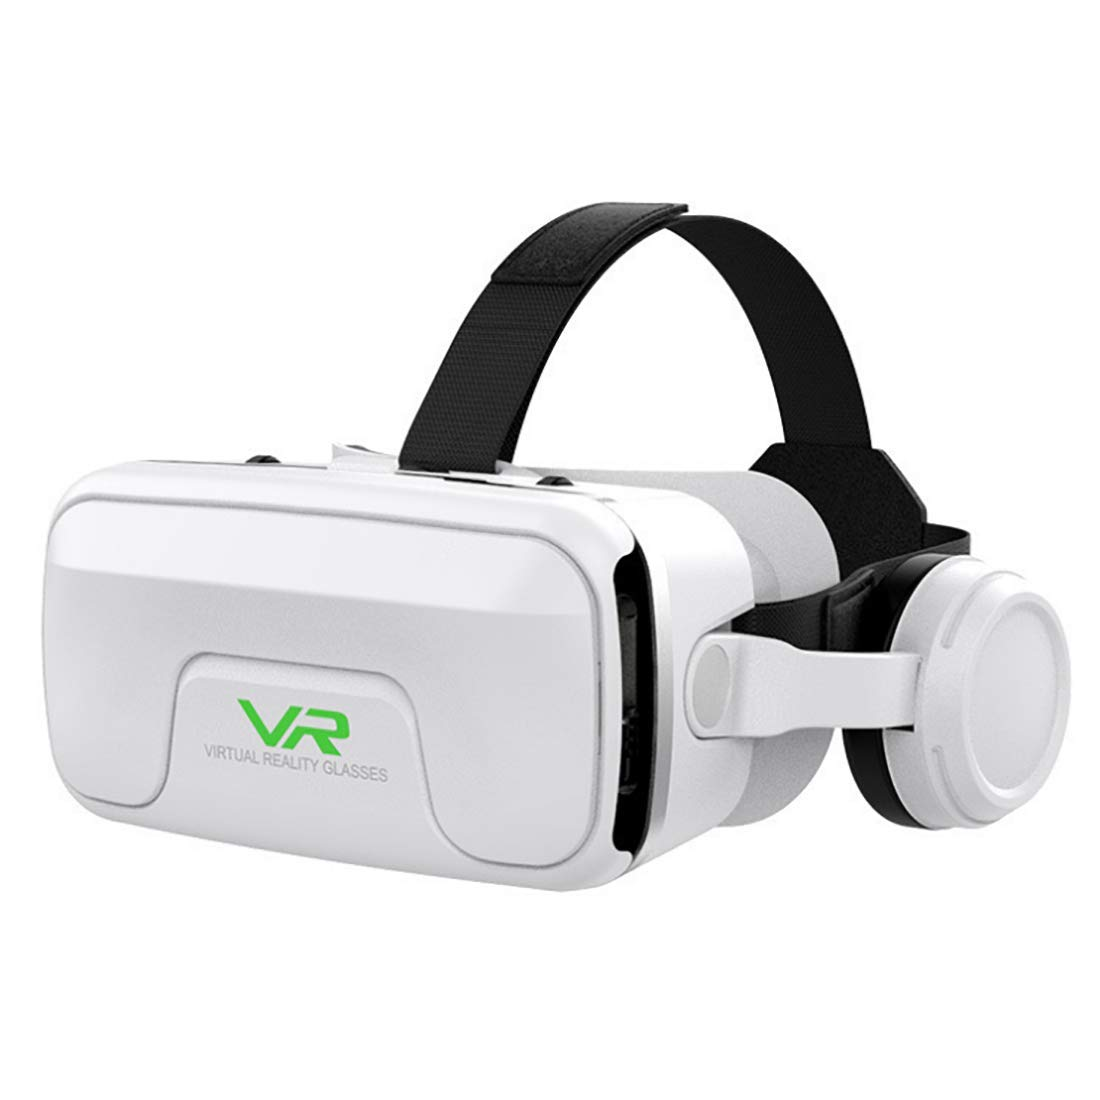 Macxz VR Headset, IMAX Giant Screen Experience Viewing, New Experience, 360° Viewing Angle, Suitable for Most 4.7-6.0 inch Android and iOS Smartphones on The Market, White